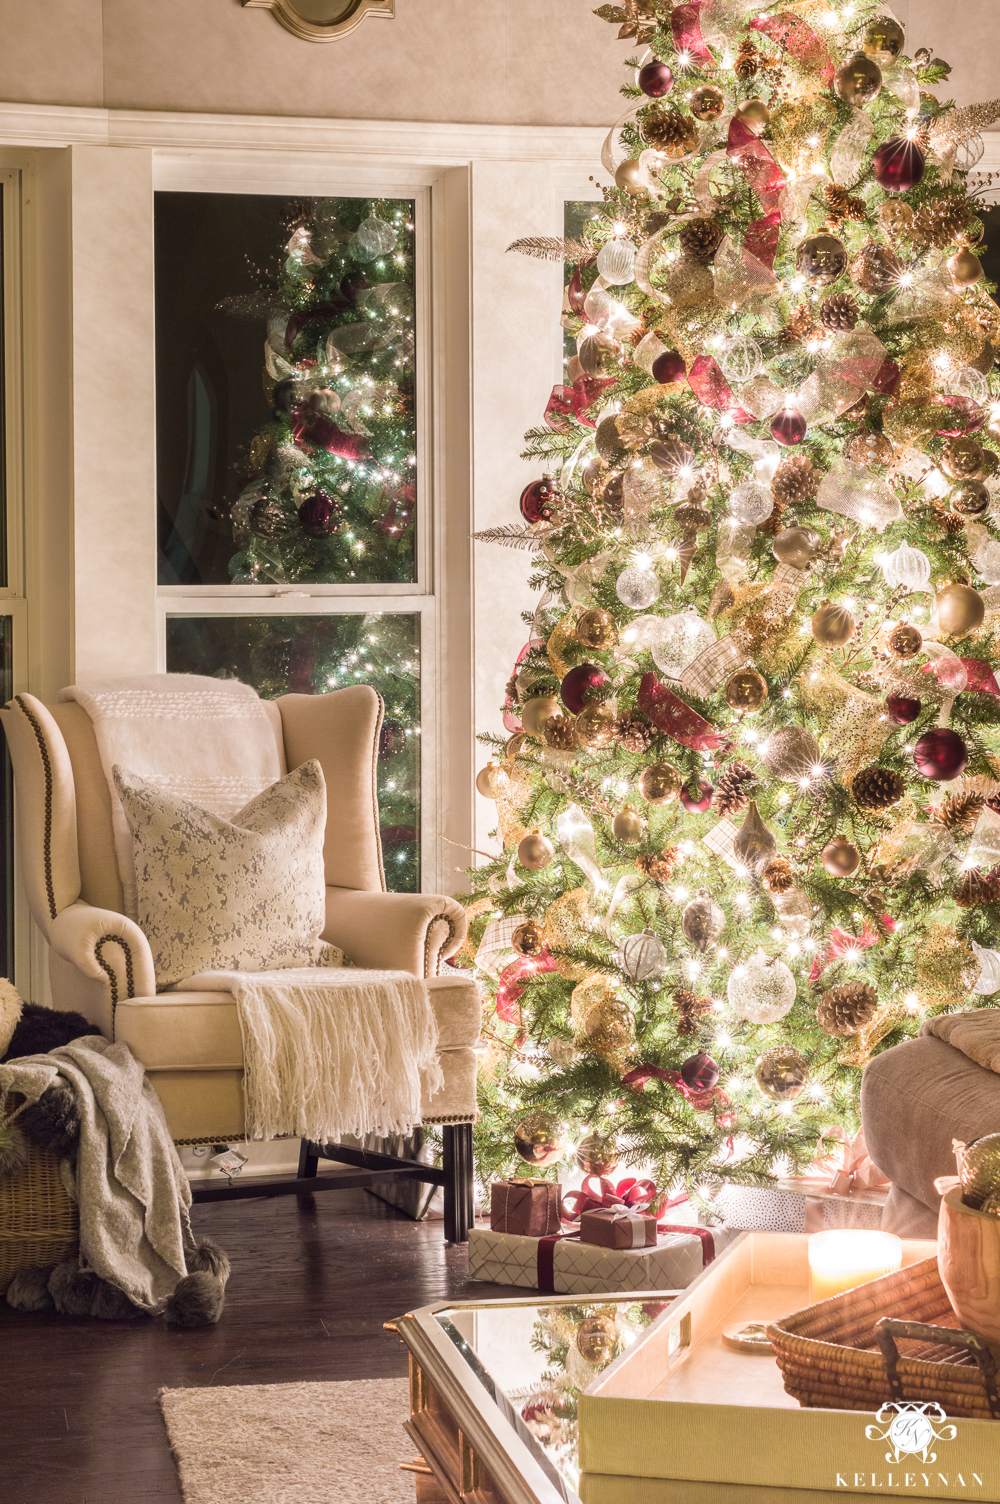 Nighttime Christmas Home Tour With Magical Glowing Twinkle Lights